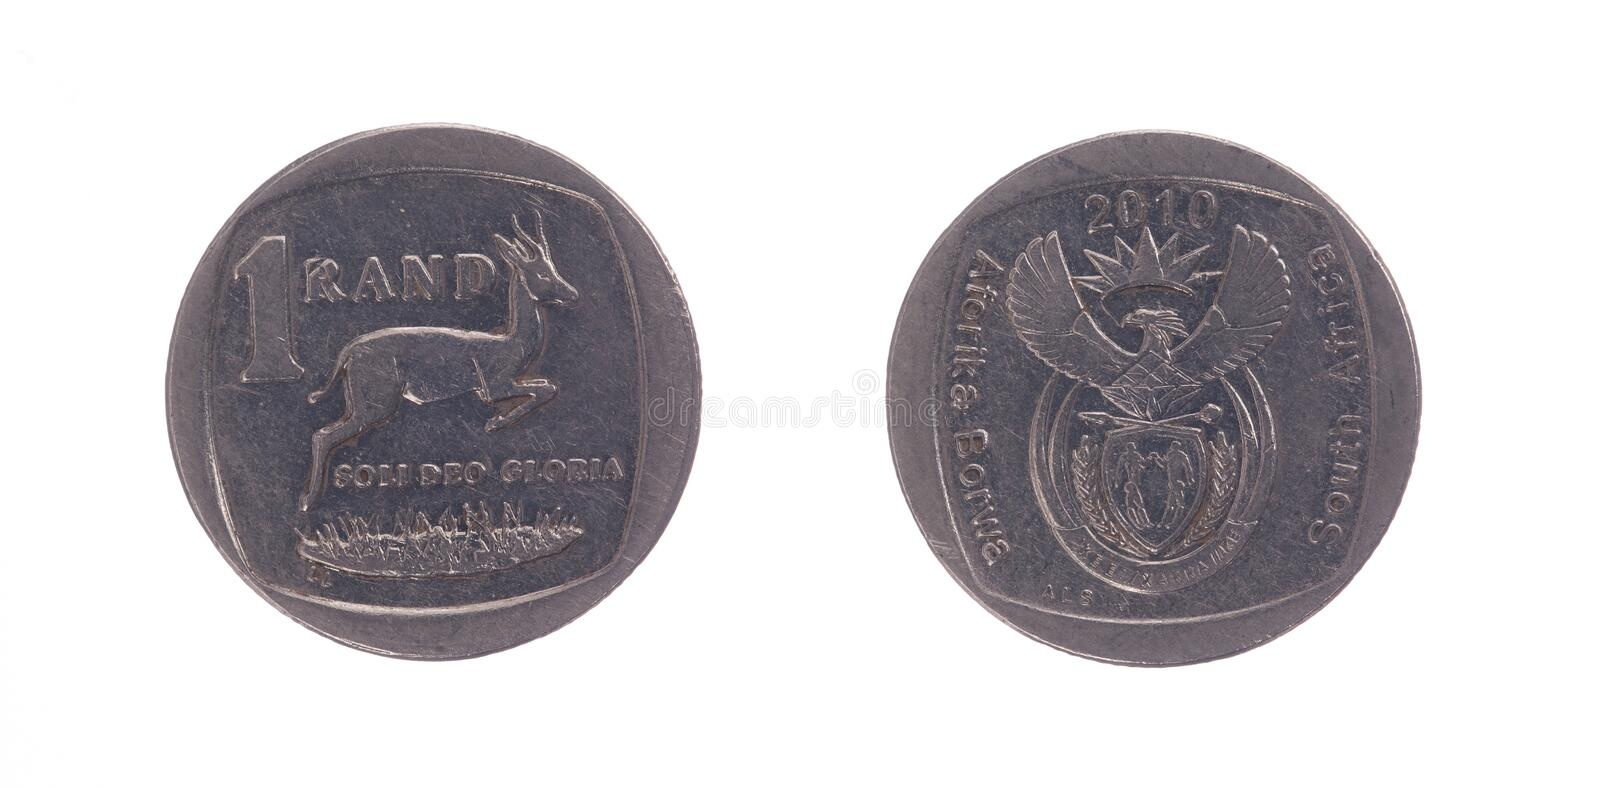 South Africa One Rand Coin. Isolated on white royalty free stock images